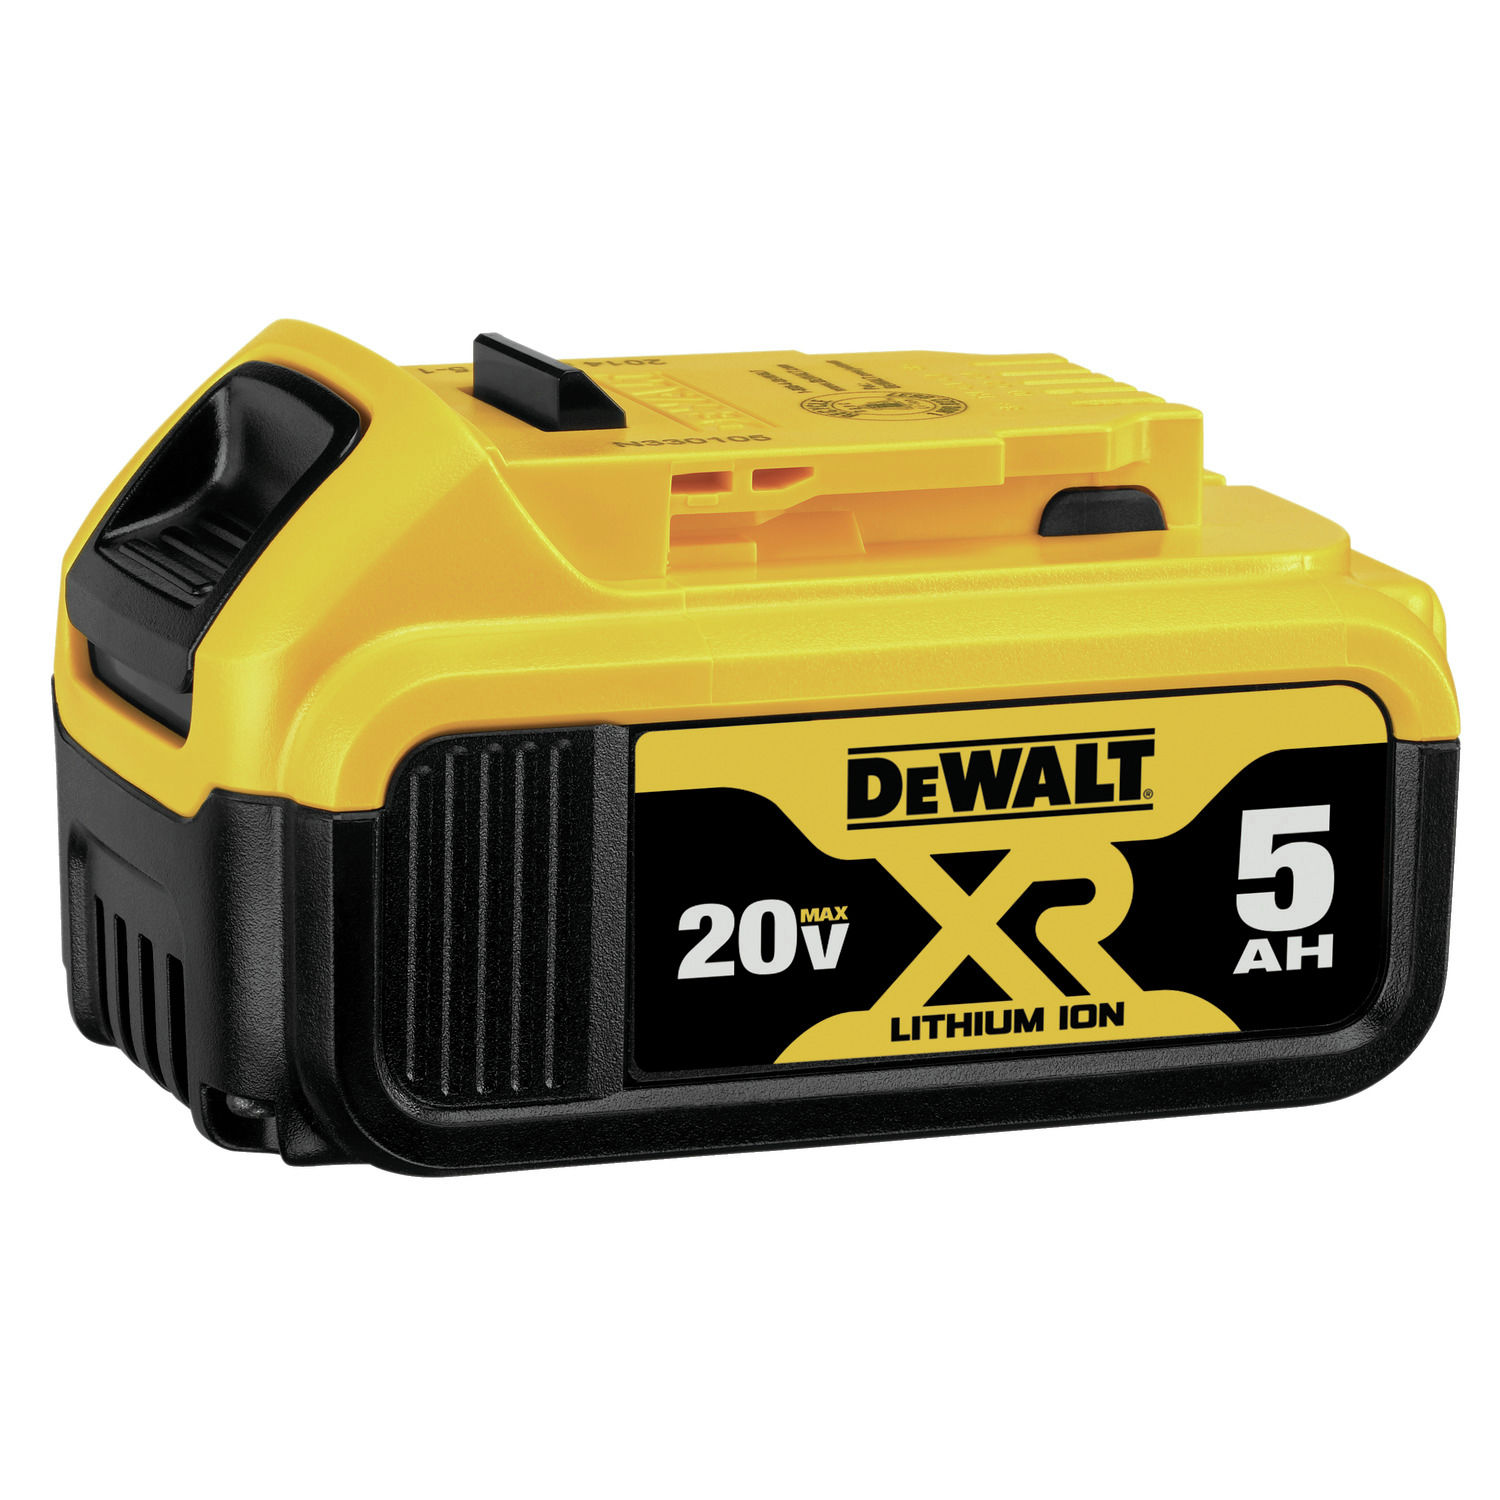 Dewalt DCB205 battery